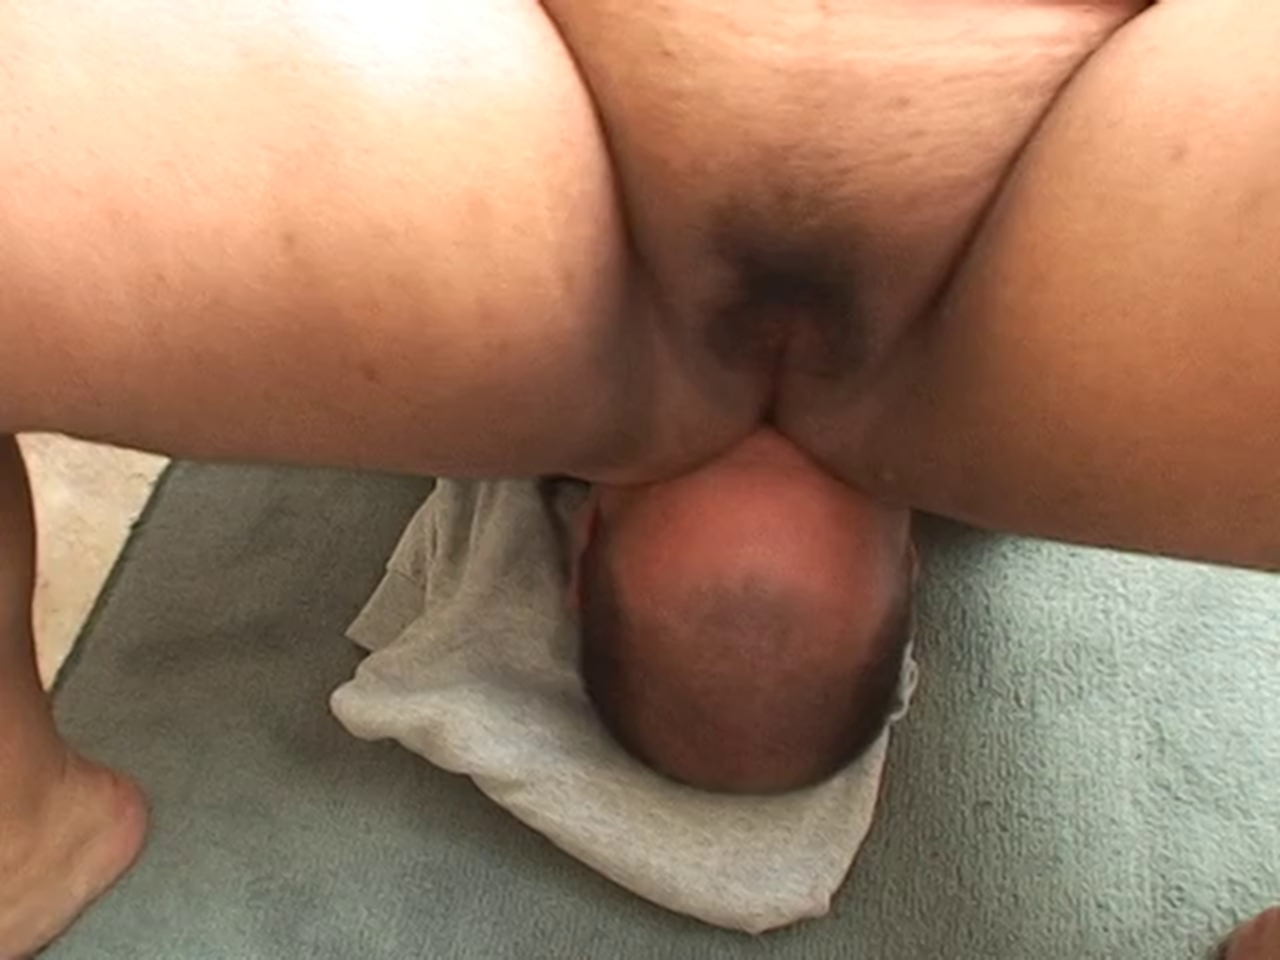 Bent over pussy close up